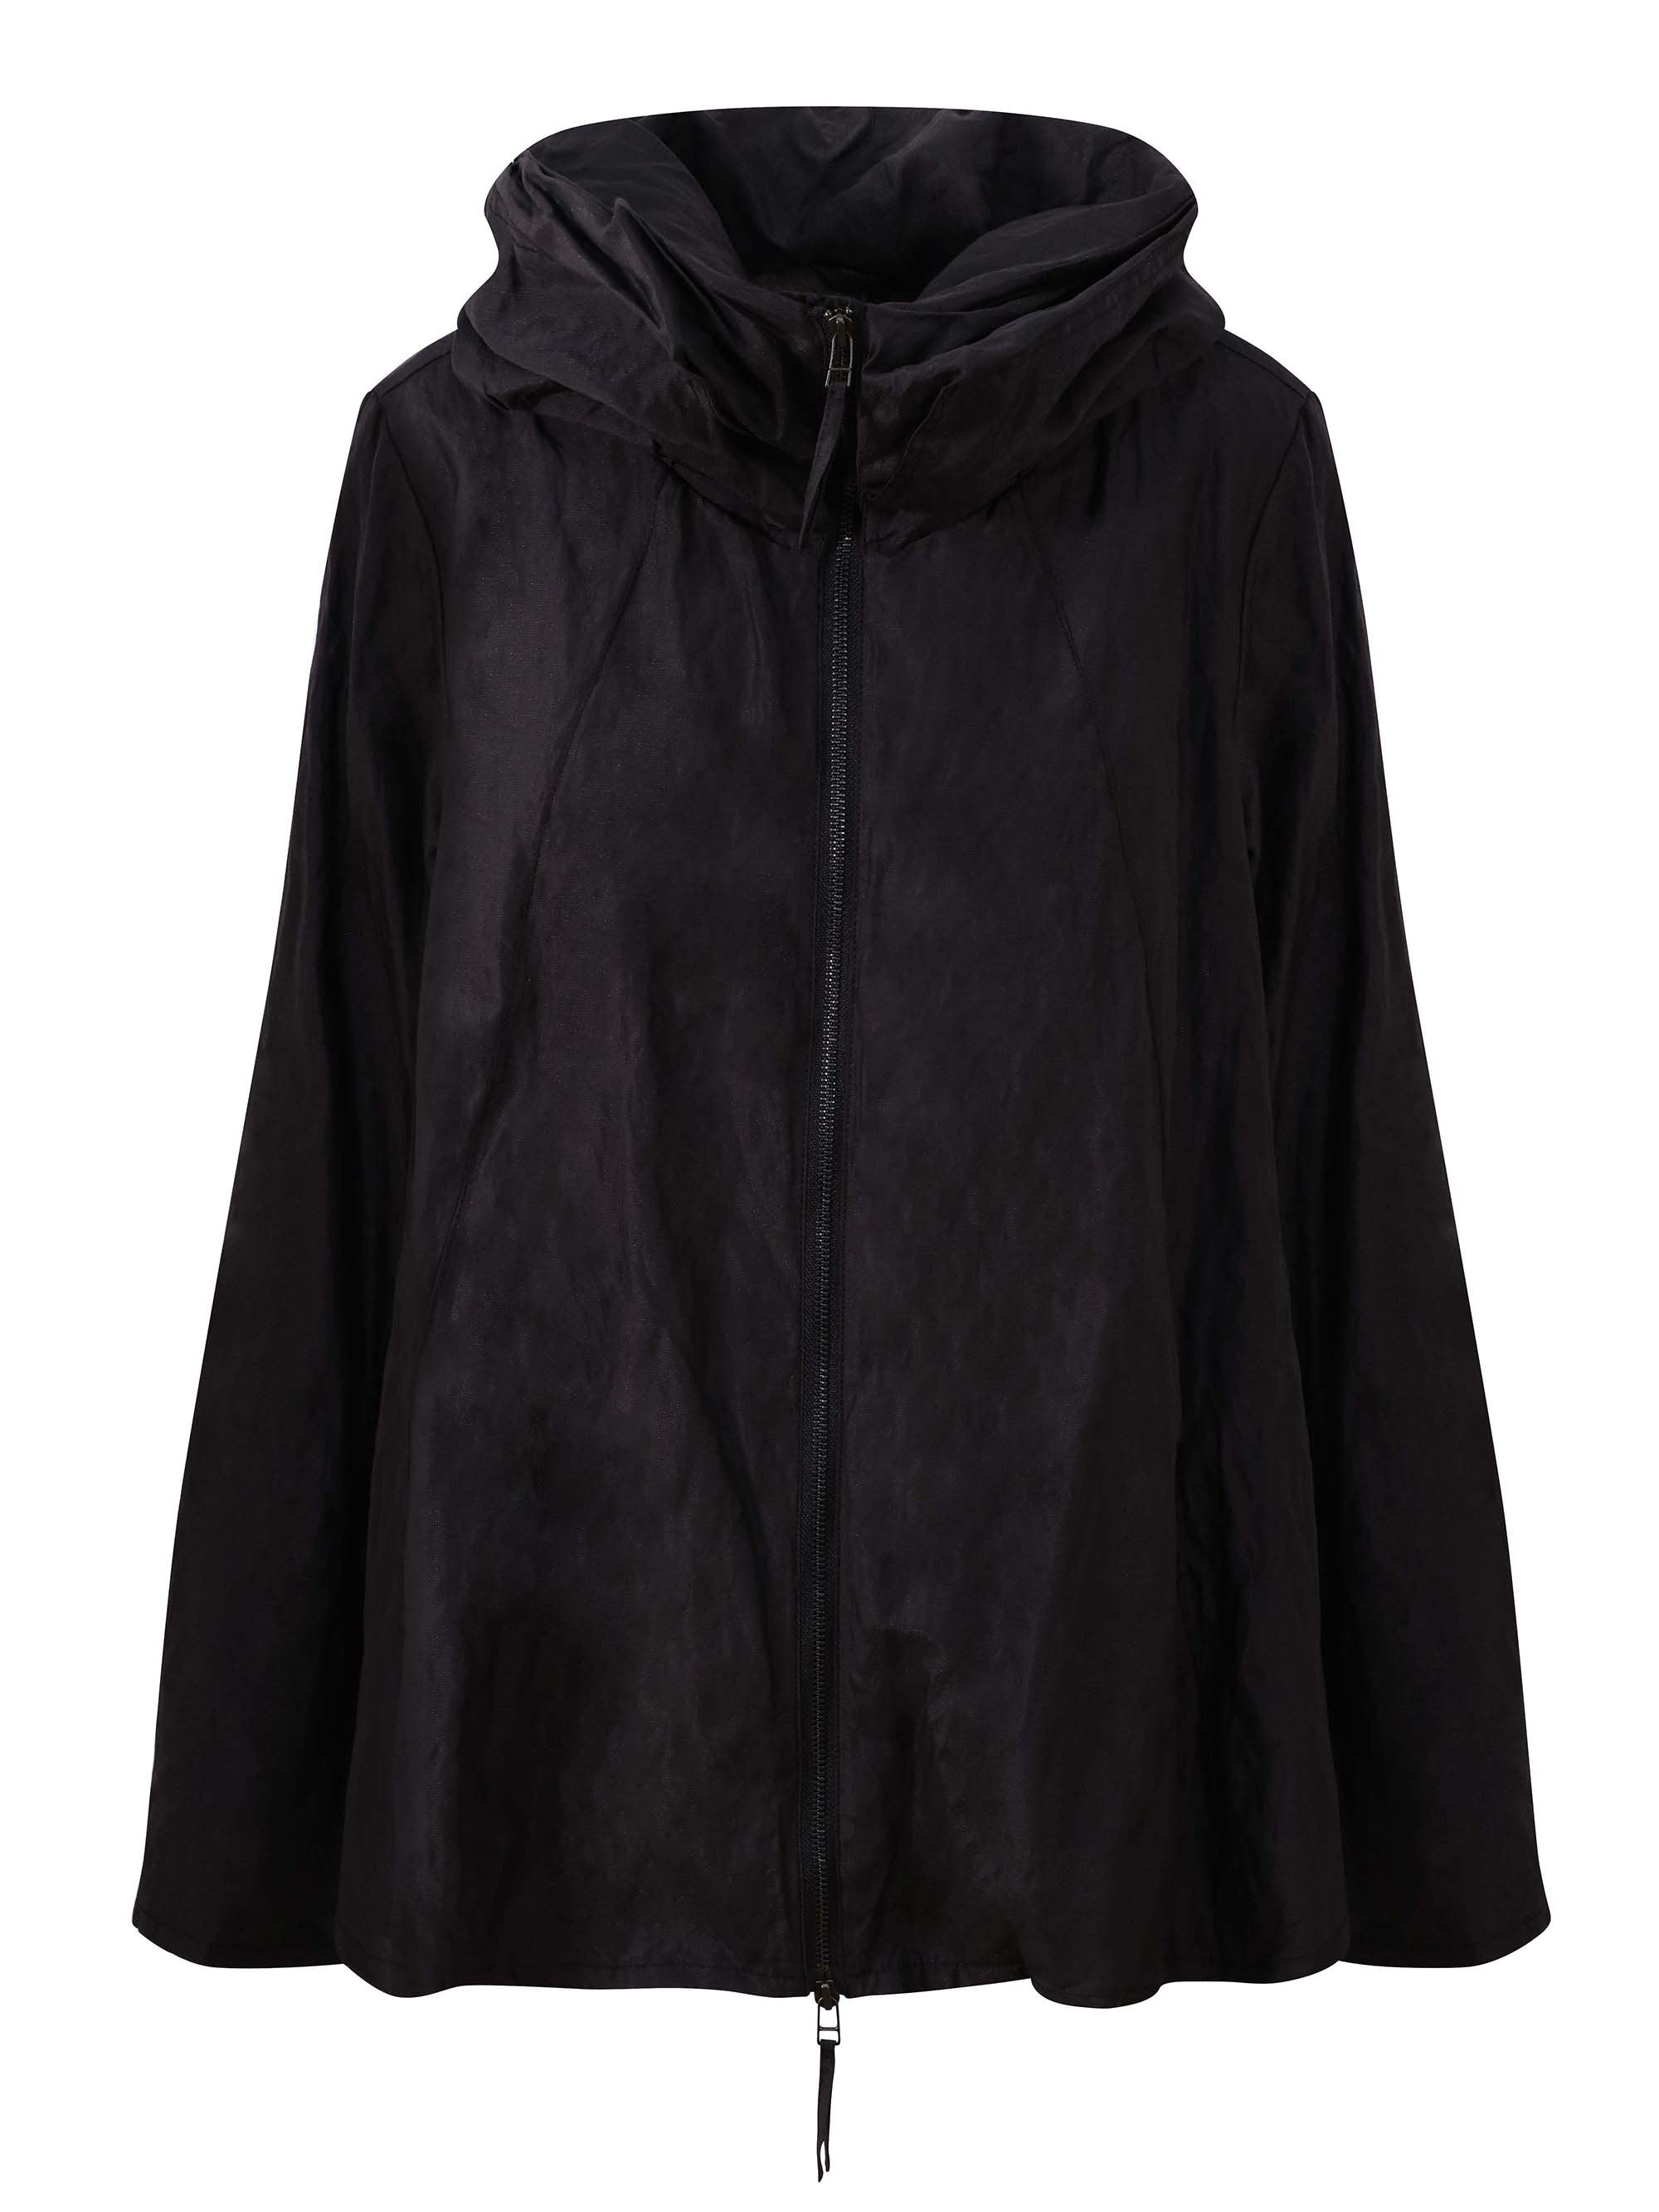 Vetono Black Short Coat With Fur Lining